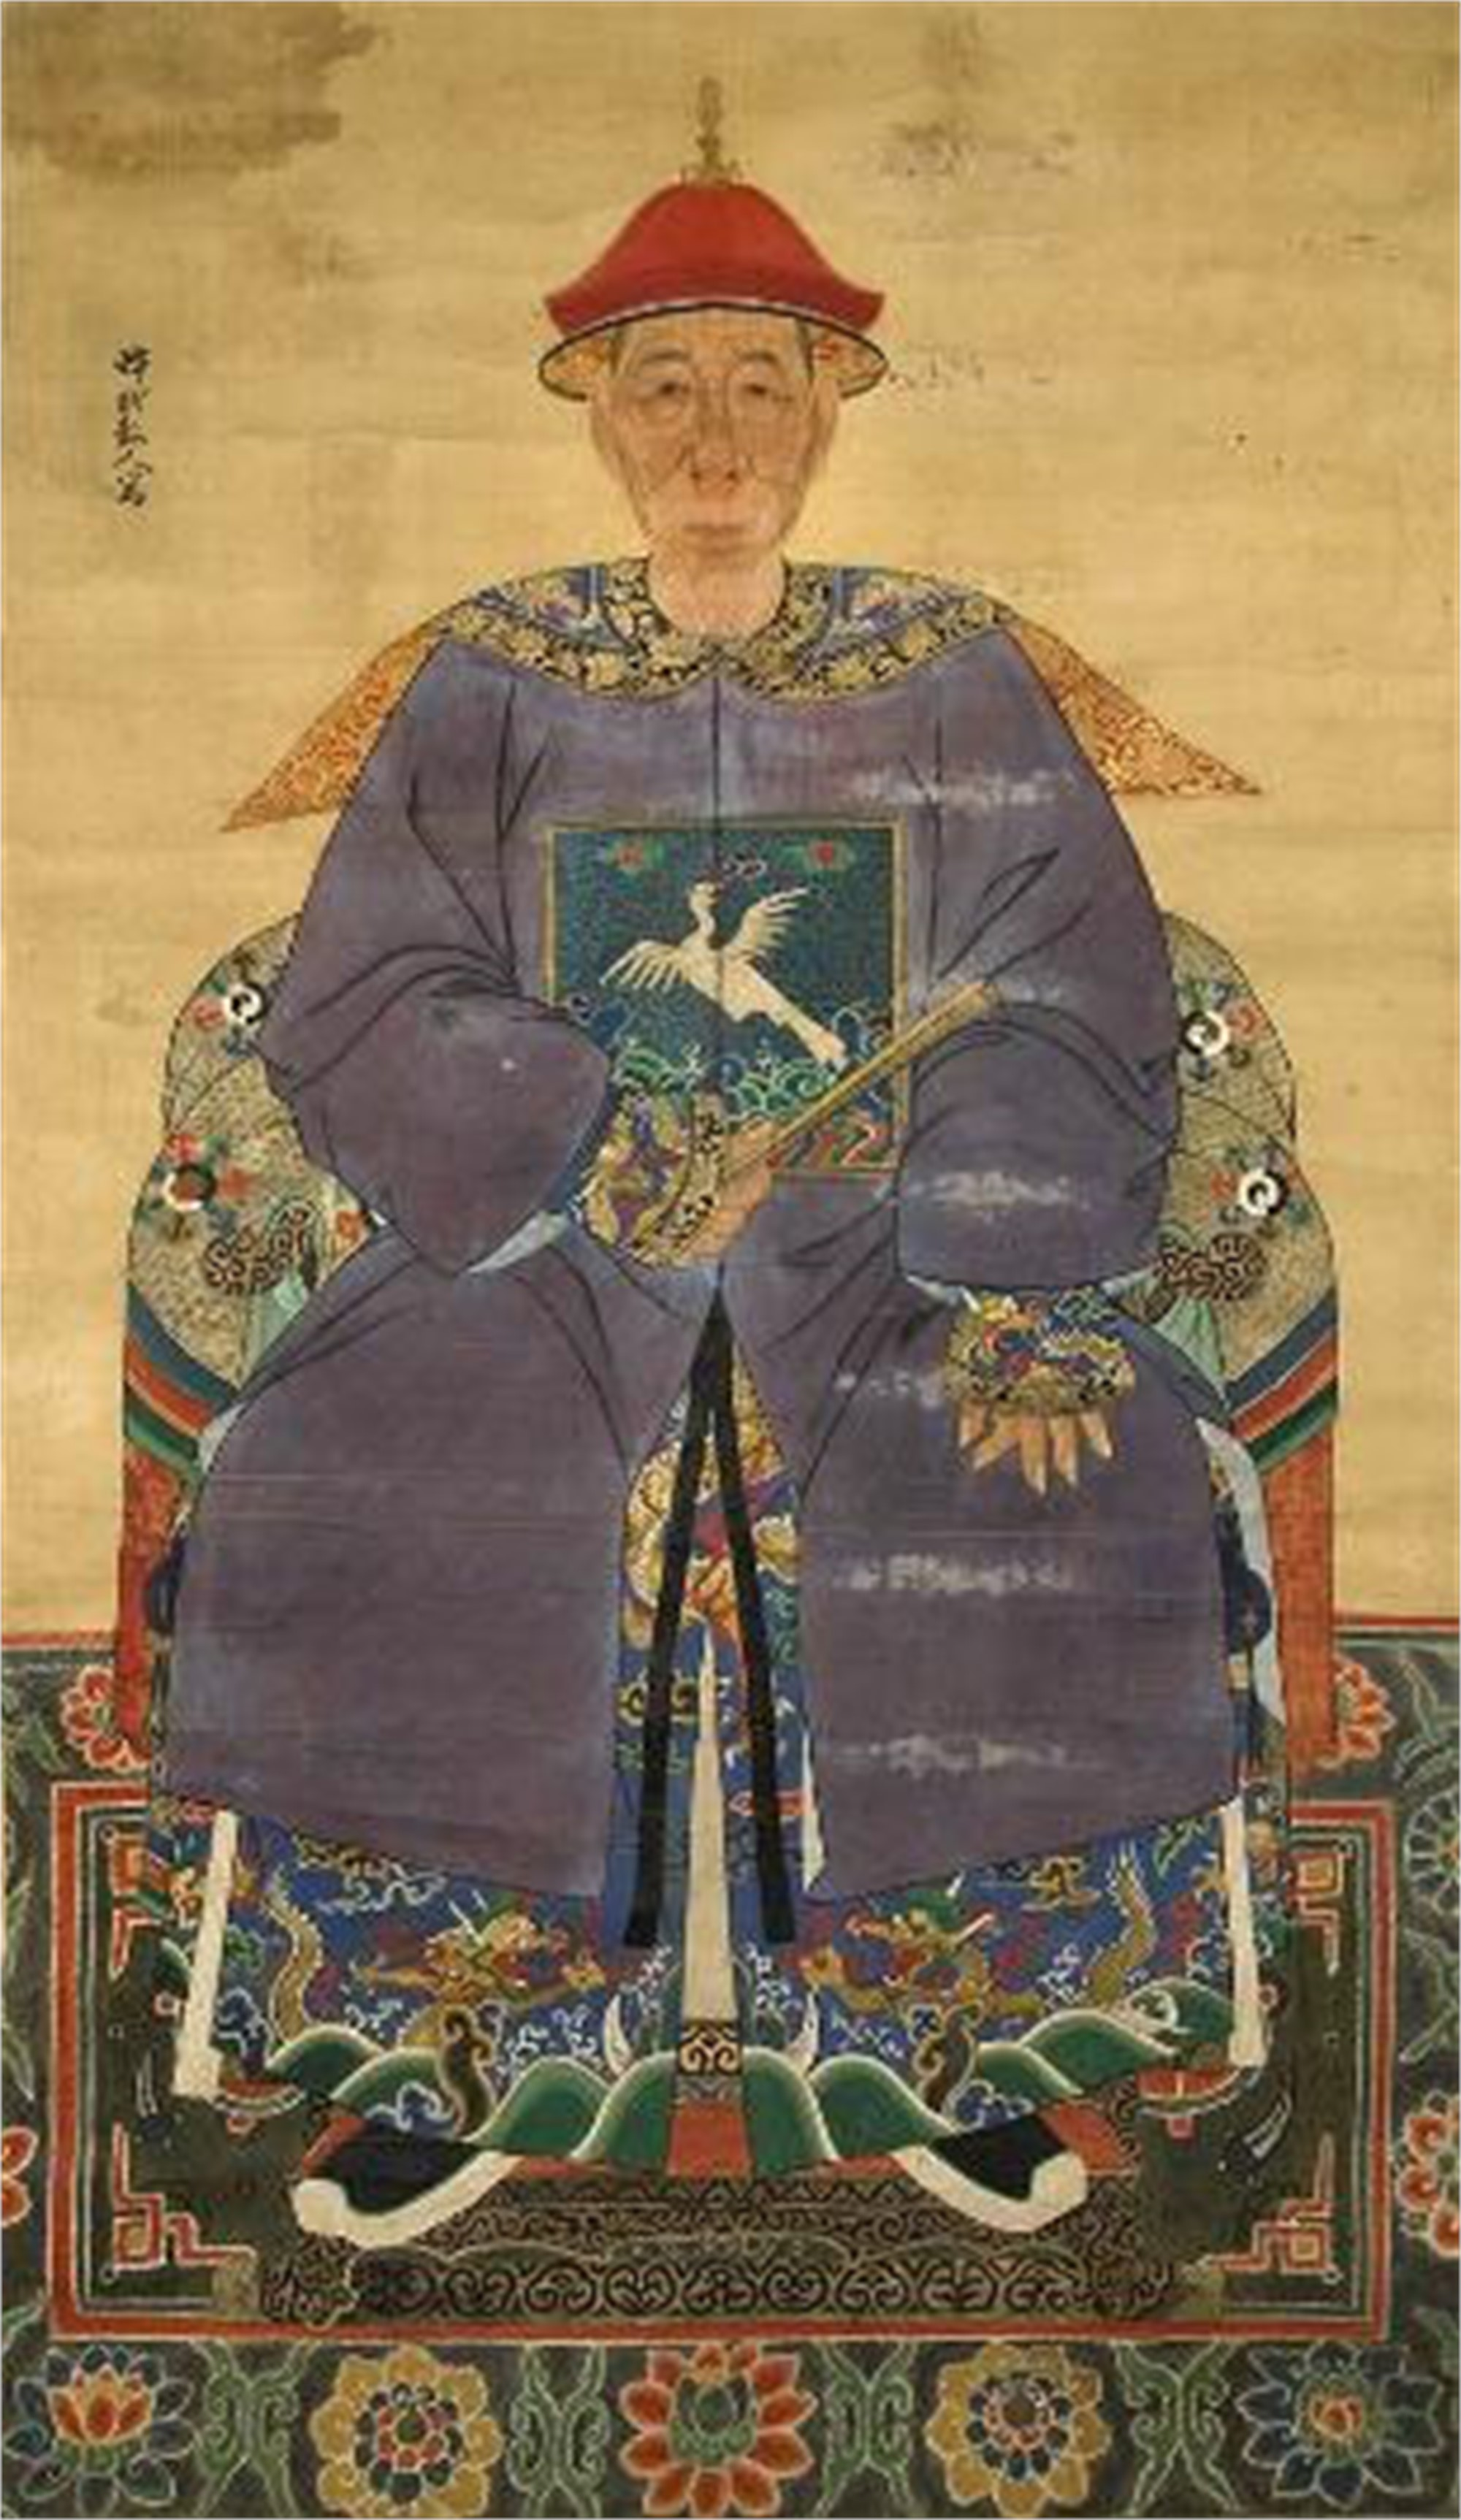 CHINESE ANCESTRAL SCROLL PAINTING OF AN OFFICIAL IN PURPLE ROBES, 9TH RANK